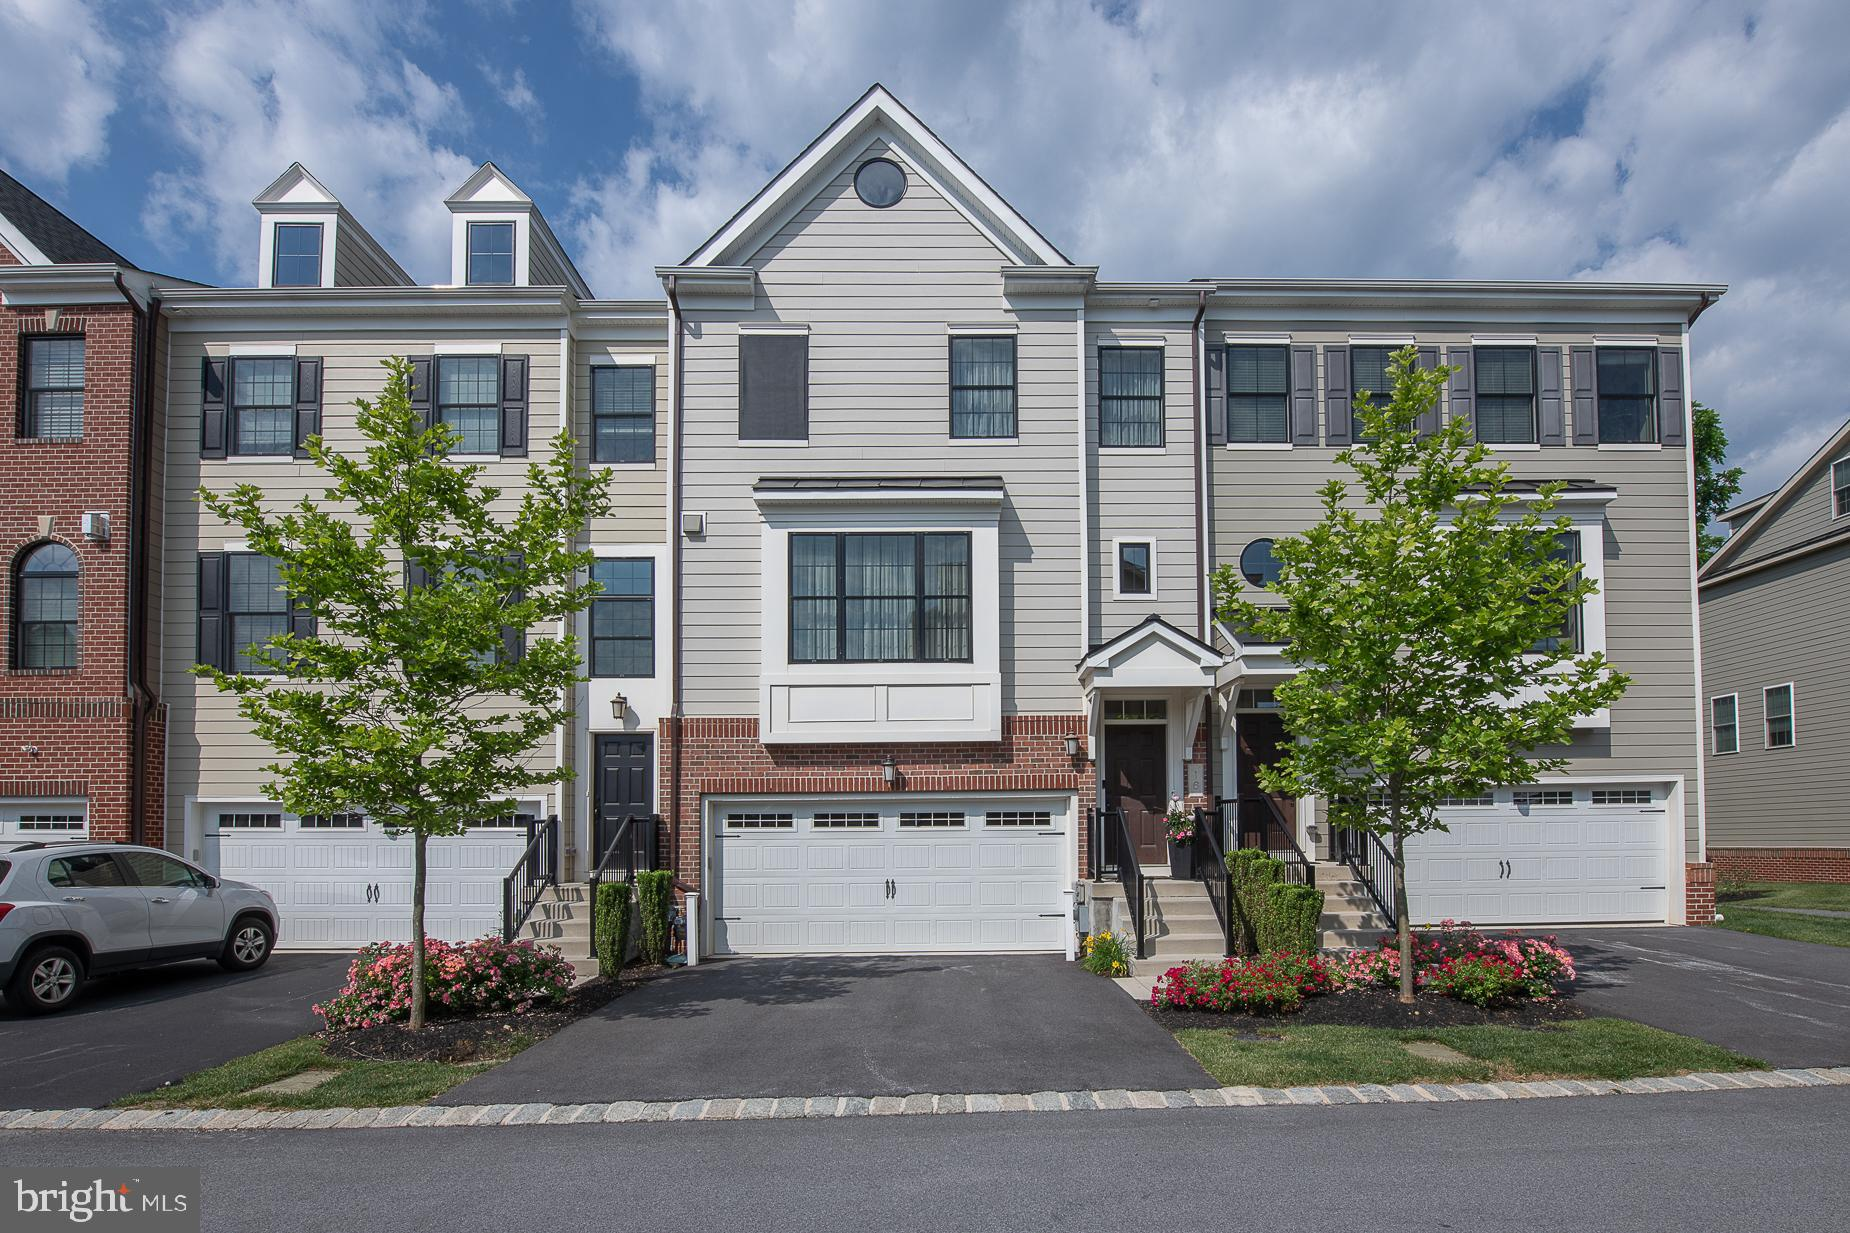 Amazing townhome at Parkview in Chesterbrook.  This 4 bedroom townhome has many upgrades, including the 4th bedroom and full bathroom located on the entry level which also has an oversized patio off the additional family room/office.  This space can easily be used as an in-law suite or private space for visitors. The main level includes many upgrades including Thermador appliances, granite countertops, light fixtures and deck with gas hookup for your grill.  The master bathroom has a beautiful freestanding soaking tub and large walk in shower, offering a spa-like atmosphere.   It gets better, the top floor includes another deck that offers privacy and a retractable awning that makes the space relaxing and enjoyable.  The townhouse has hardwood floors on every level and upgraded spindles on the staircase.  This meticulous home offers privacy in the rear and designated open space view from front!